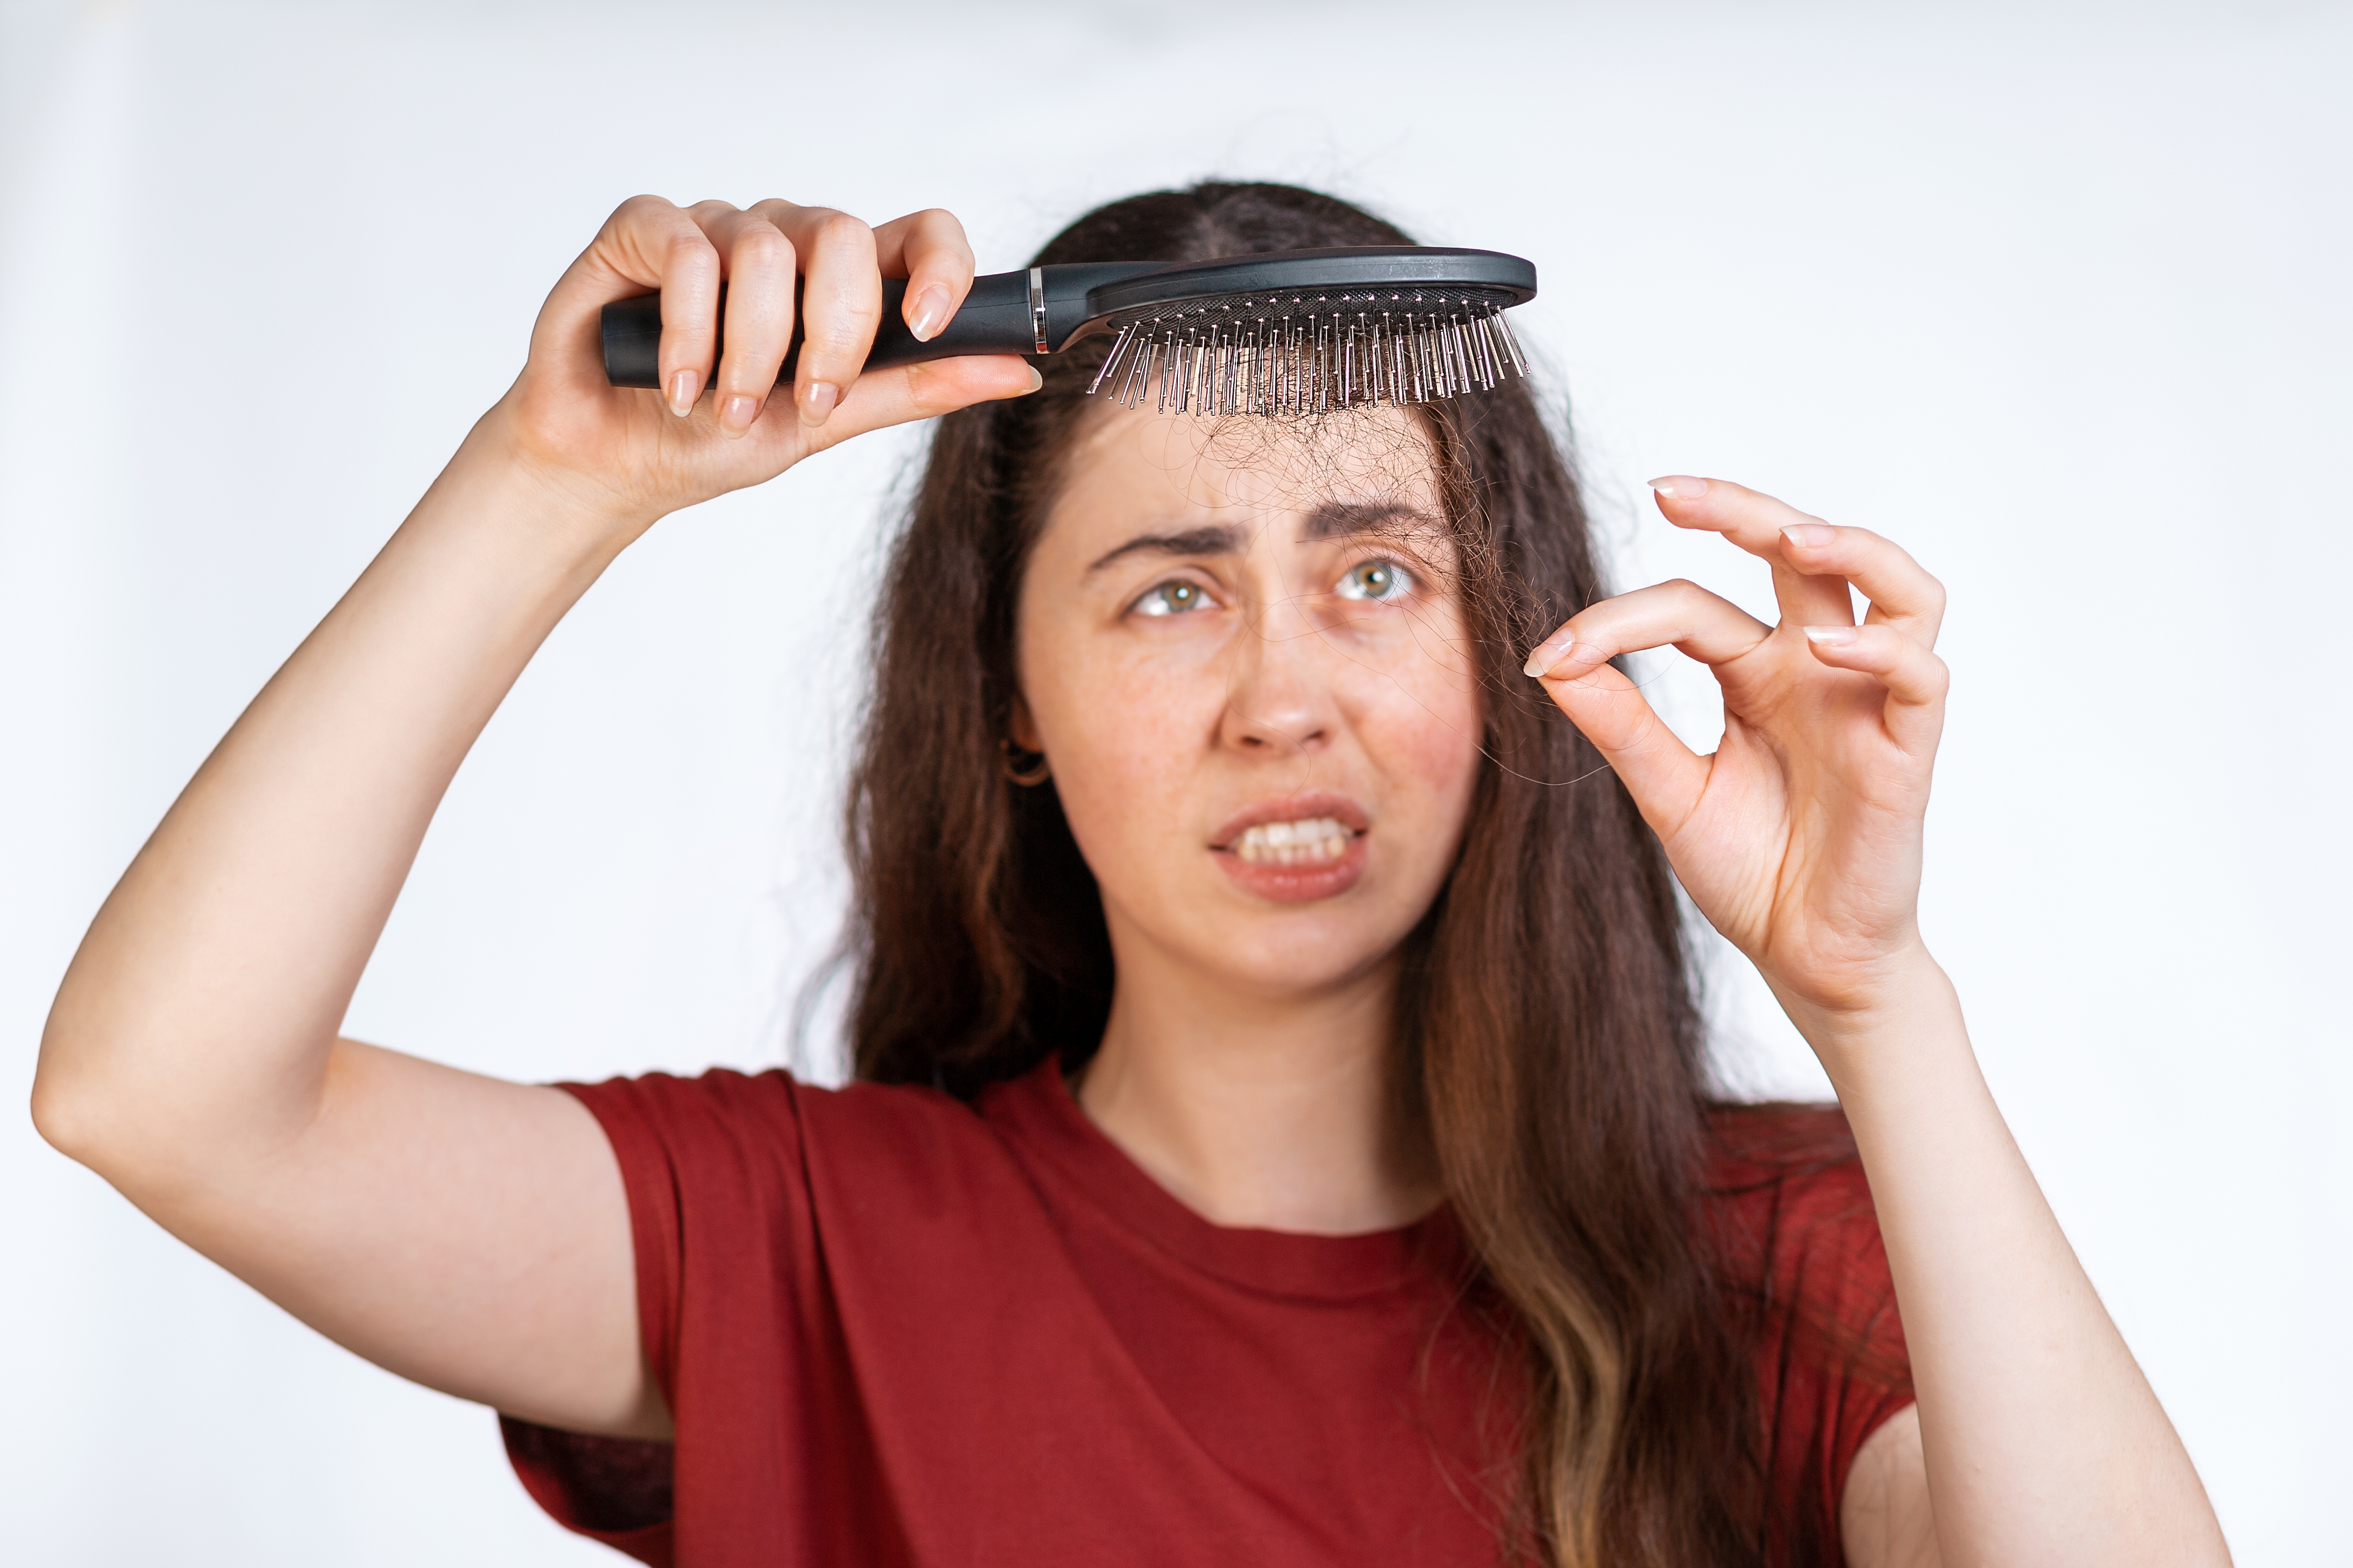 People often don't connect their hair loss with stress since it usually doesn't happen right away, one expert explains.